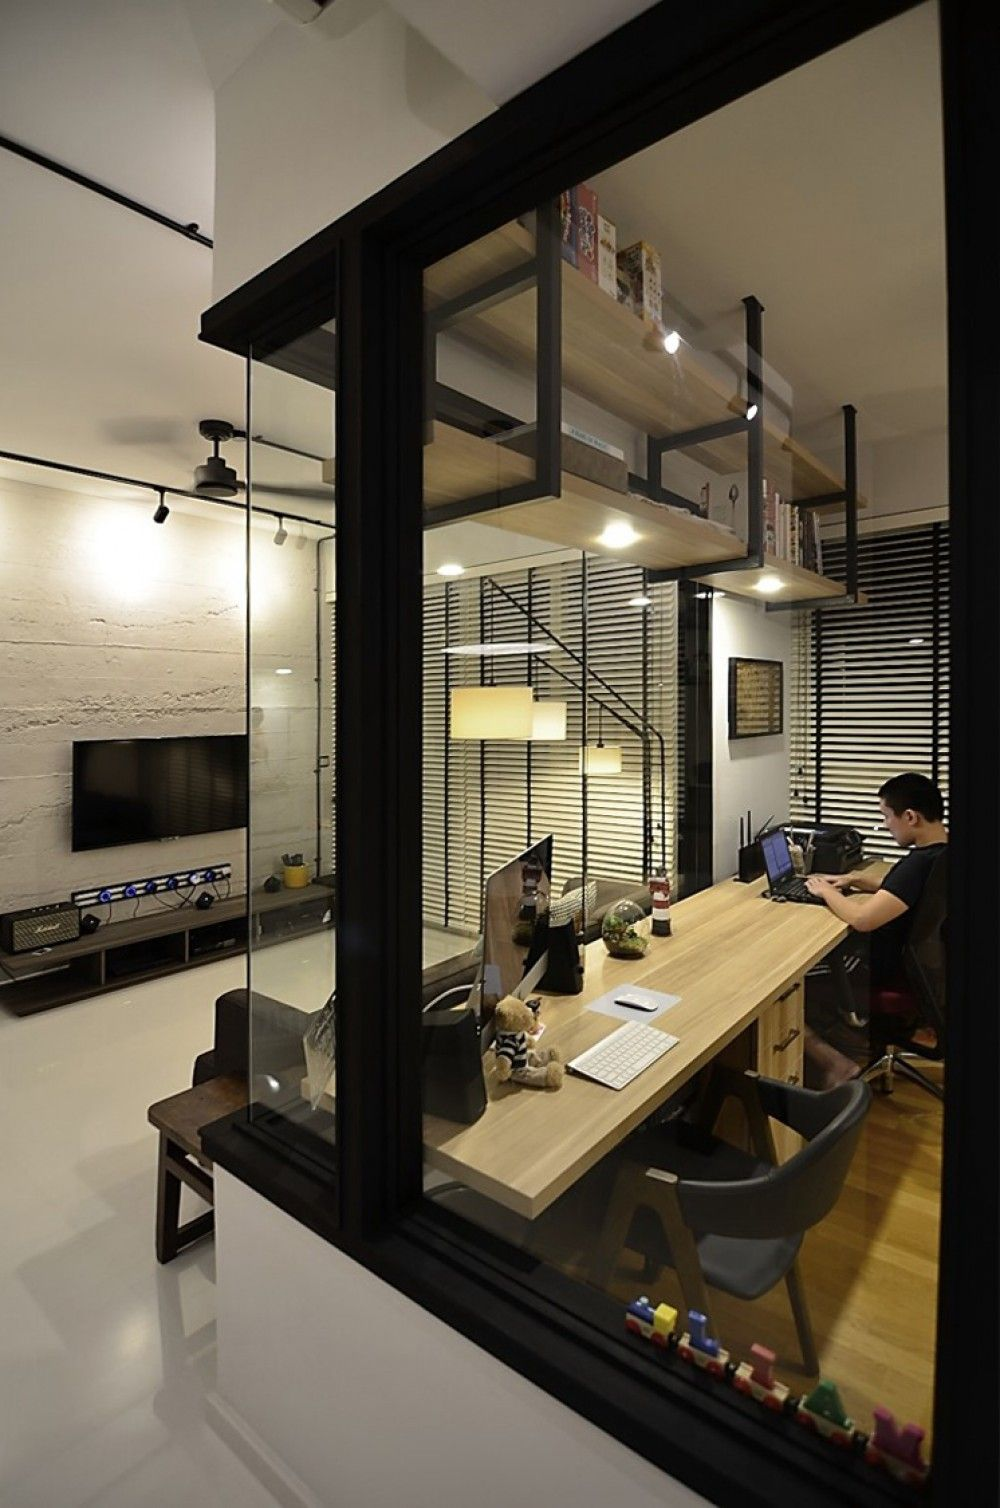 Hdb Study Room Design Ideas: Semi-industrial Manhattan Living Style Was Adopted For The